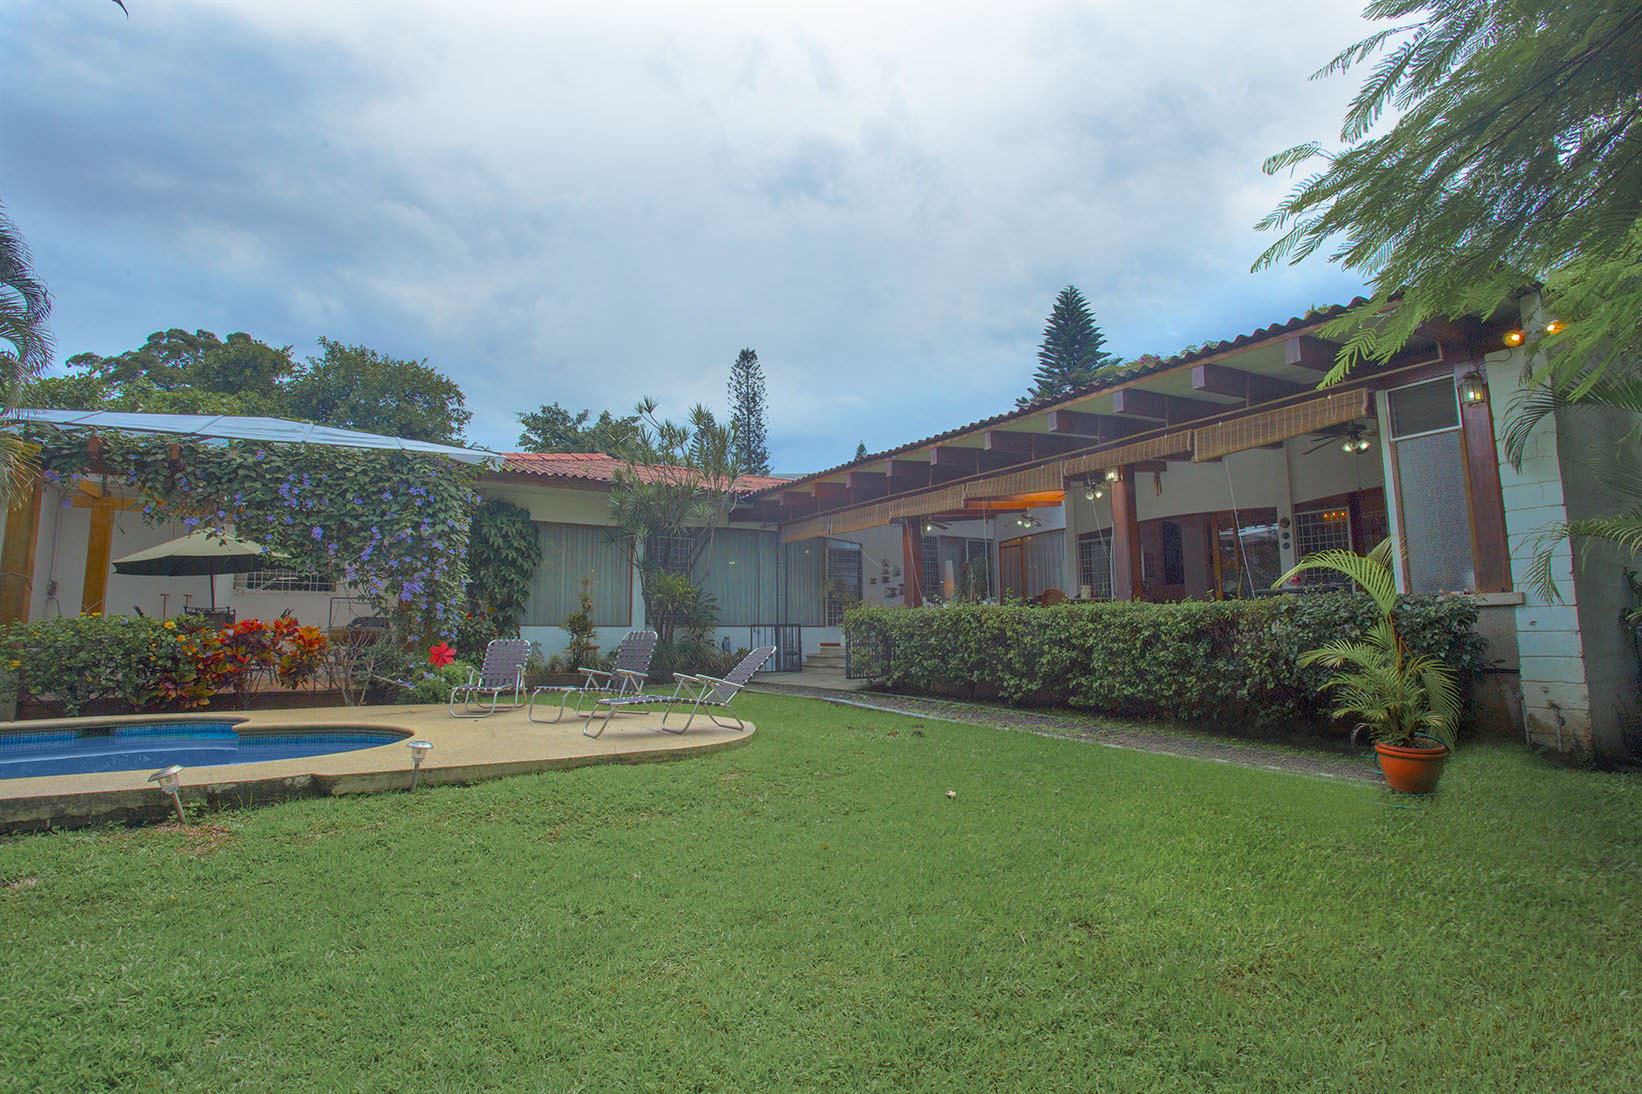 Single Family Home for Sale at Pool Residence in Escazu Escazu, Costa Rica